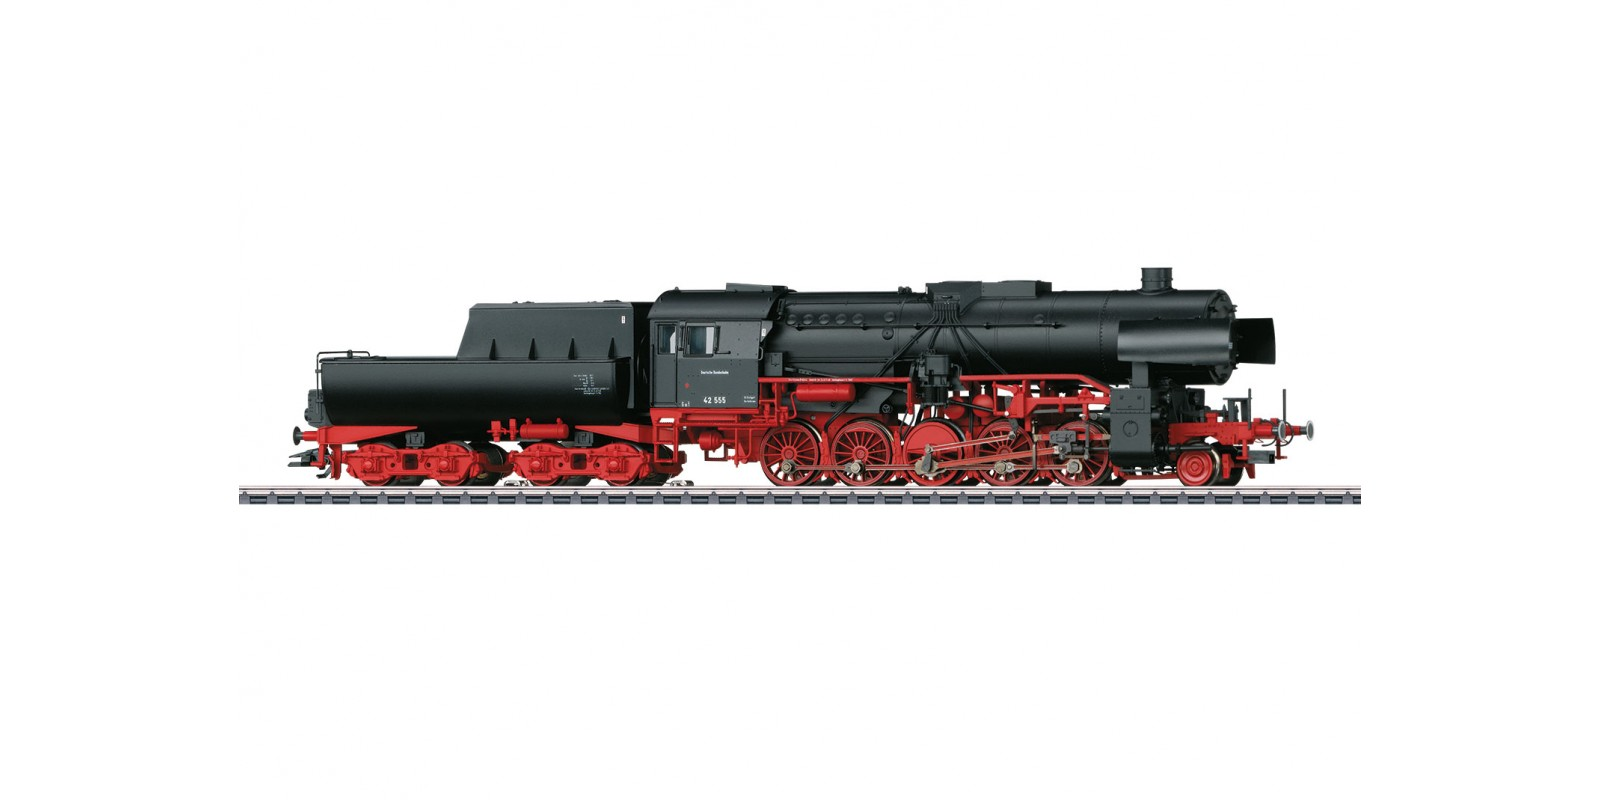 39043 Class 42 Heavy Steam Freight Locomotive with a Tub-Style Tender